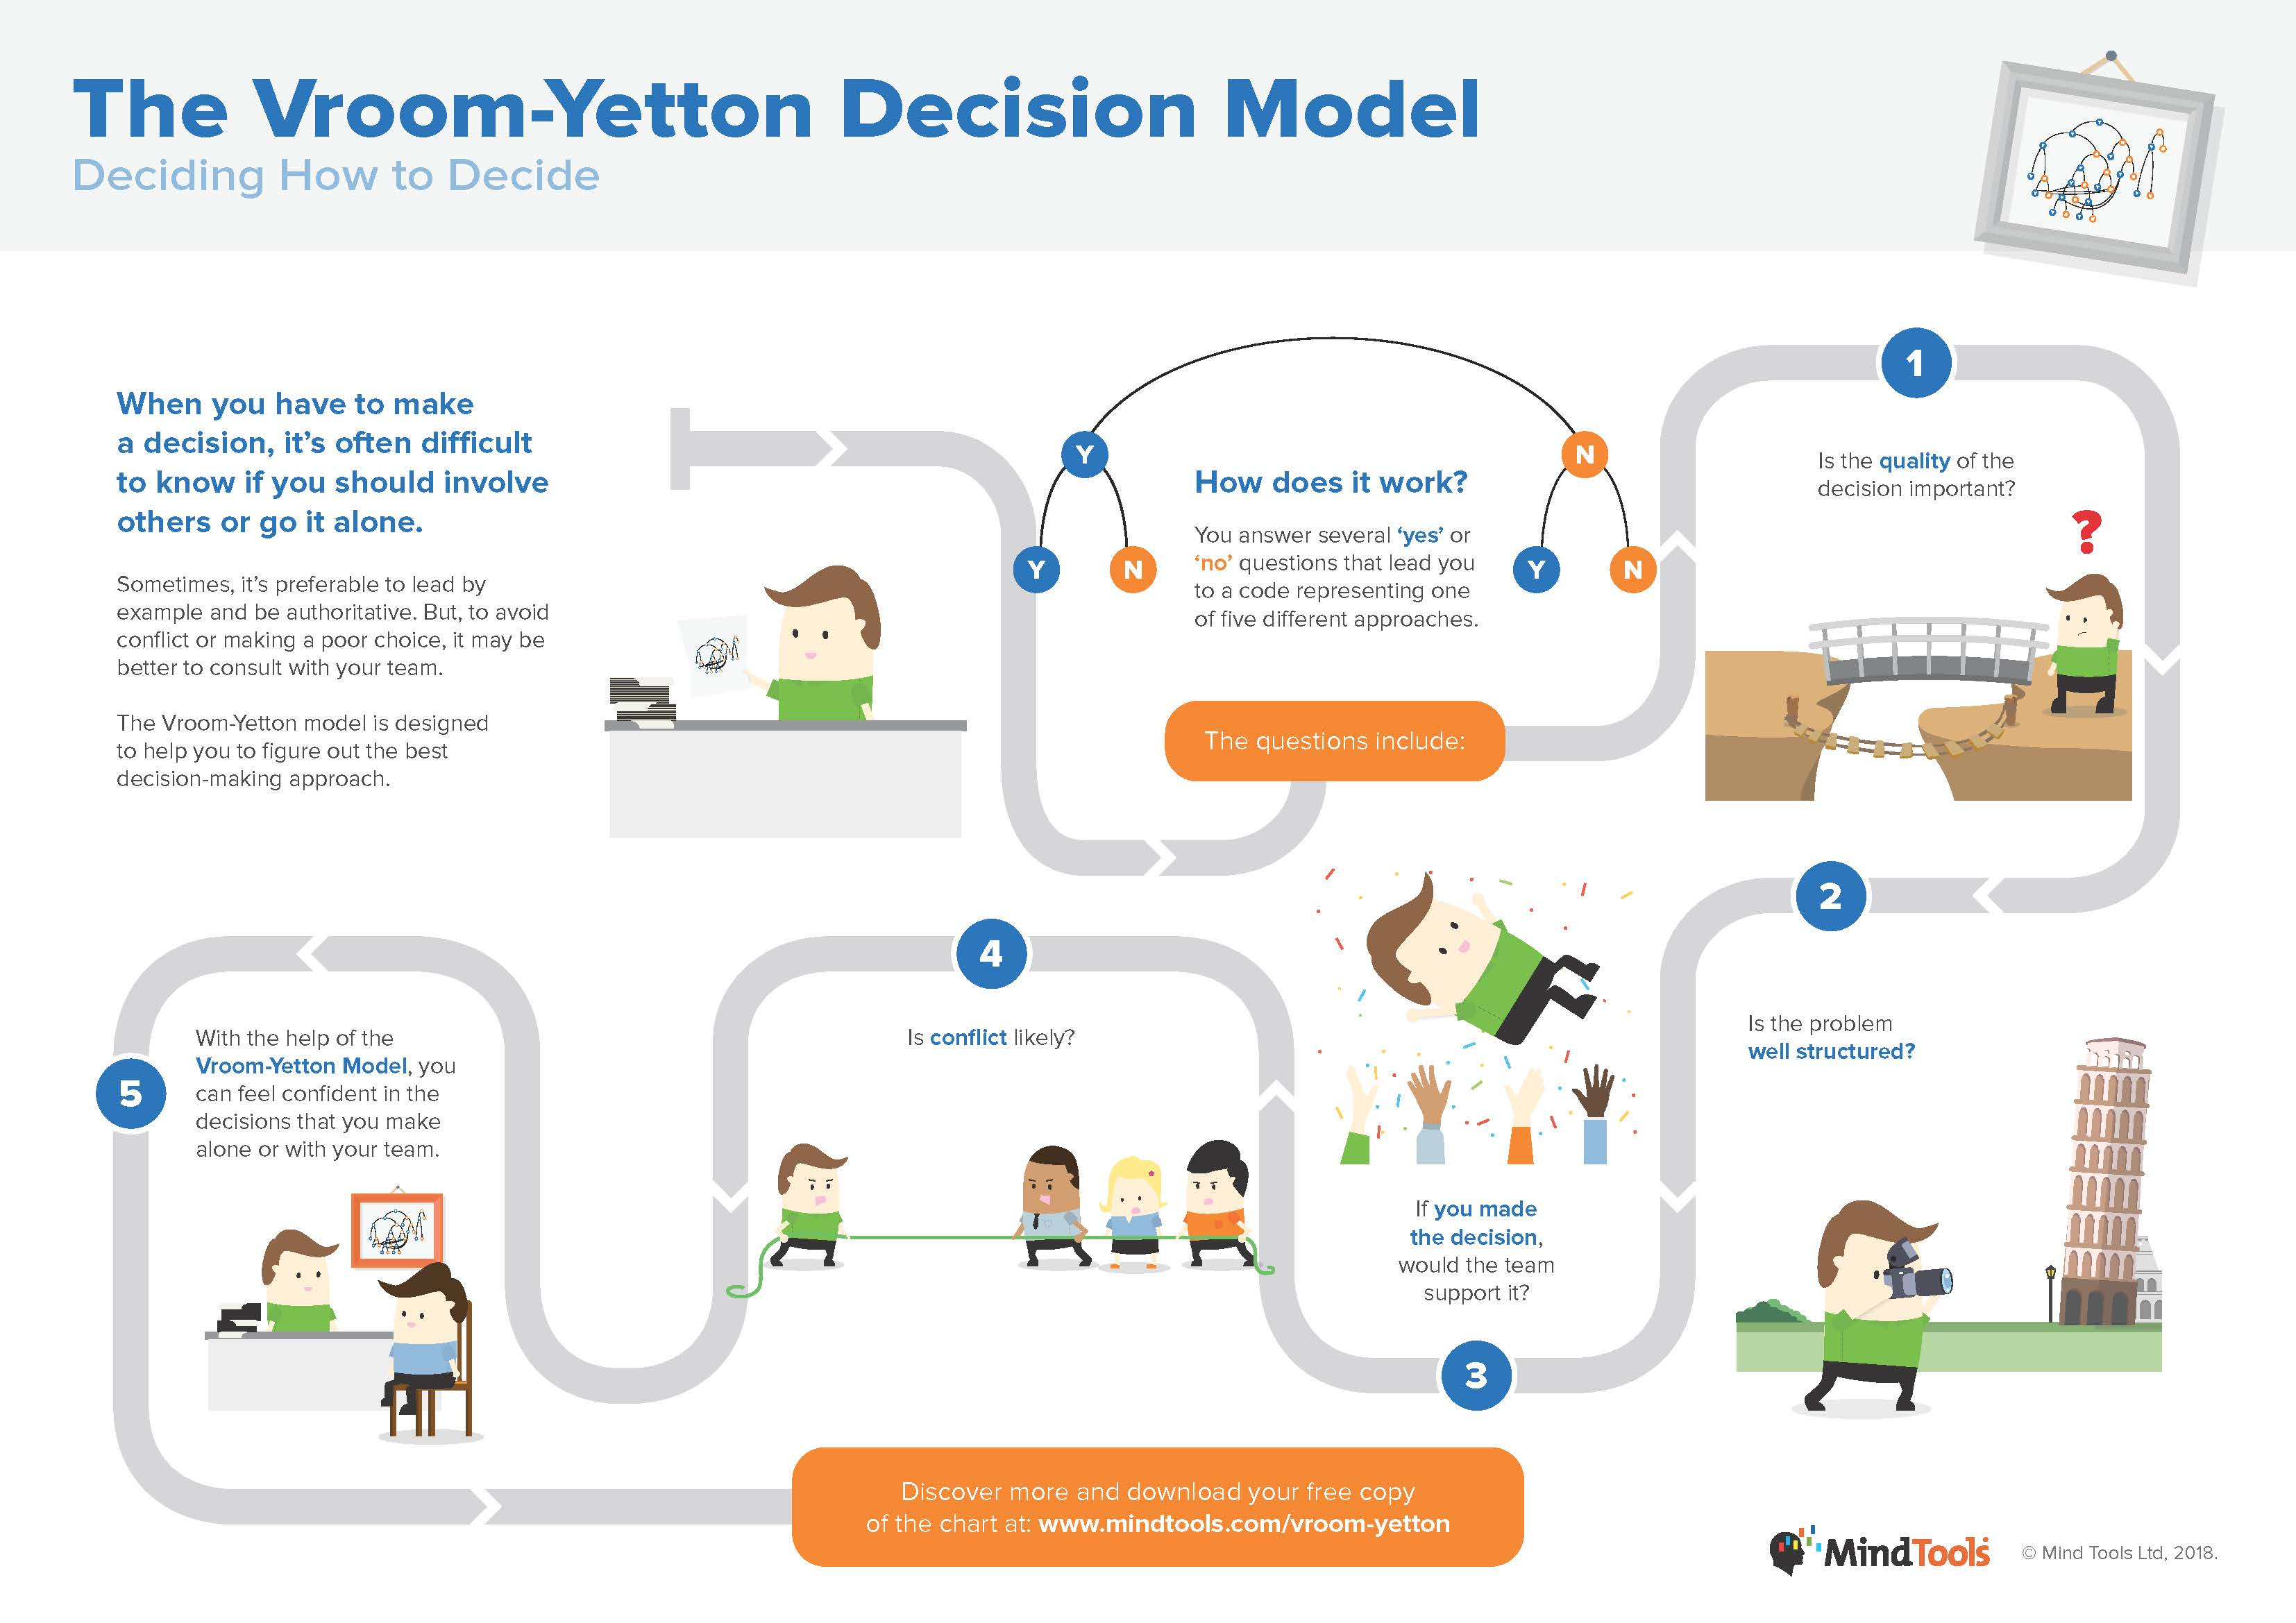 Vroom-Yetton Decision Model Infographic